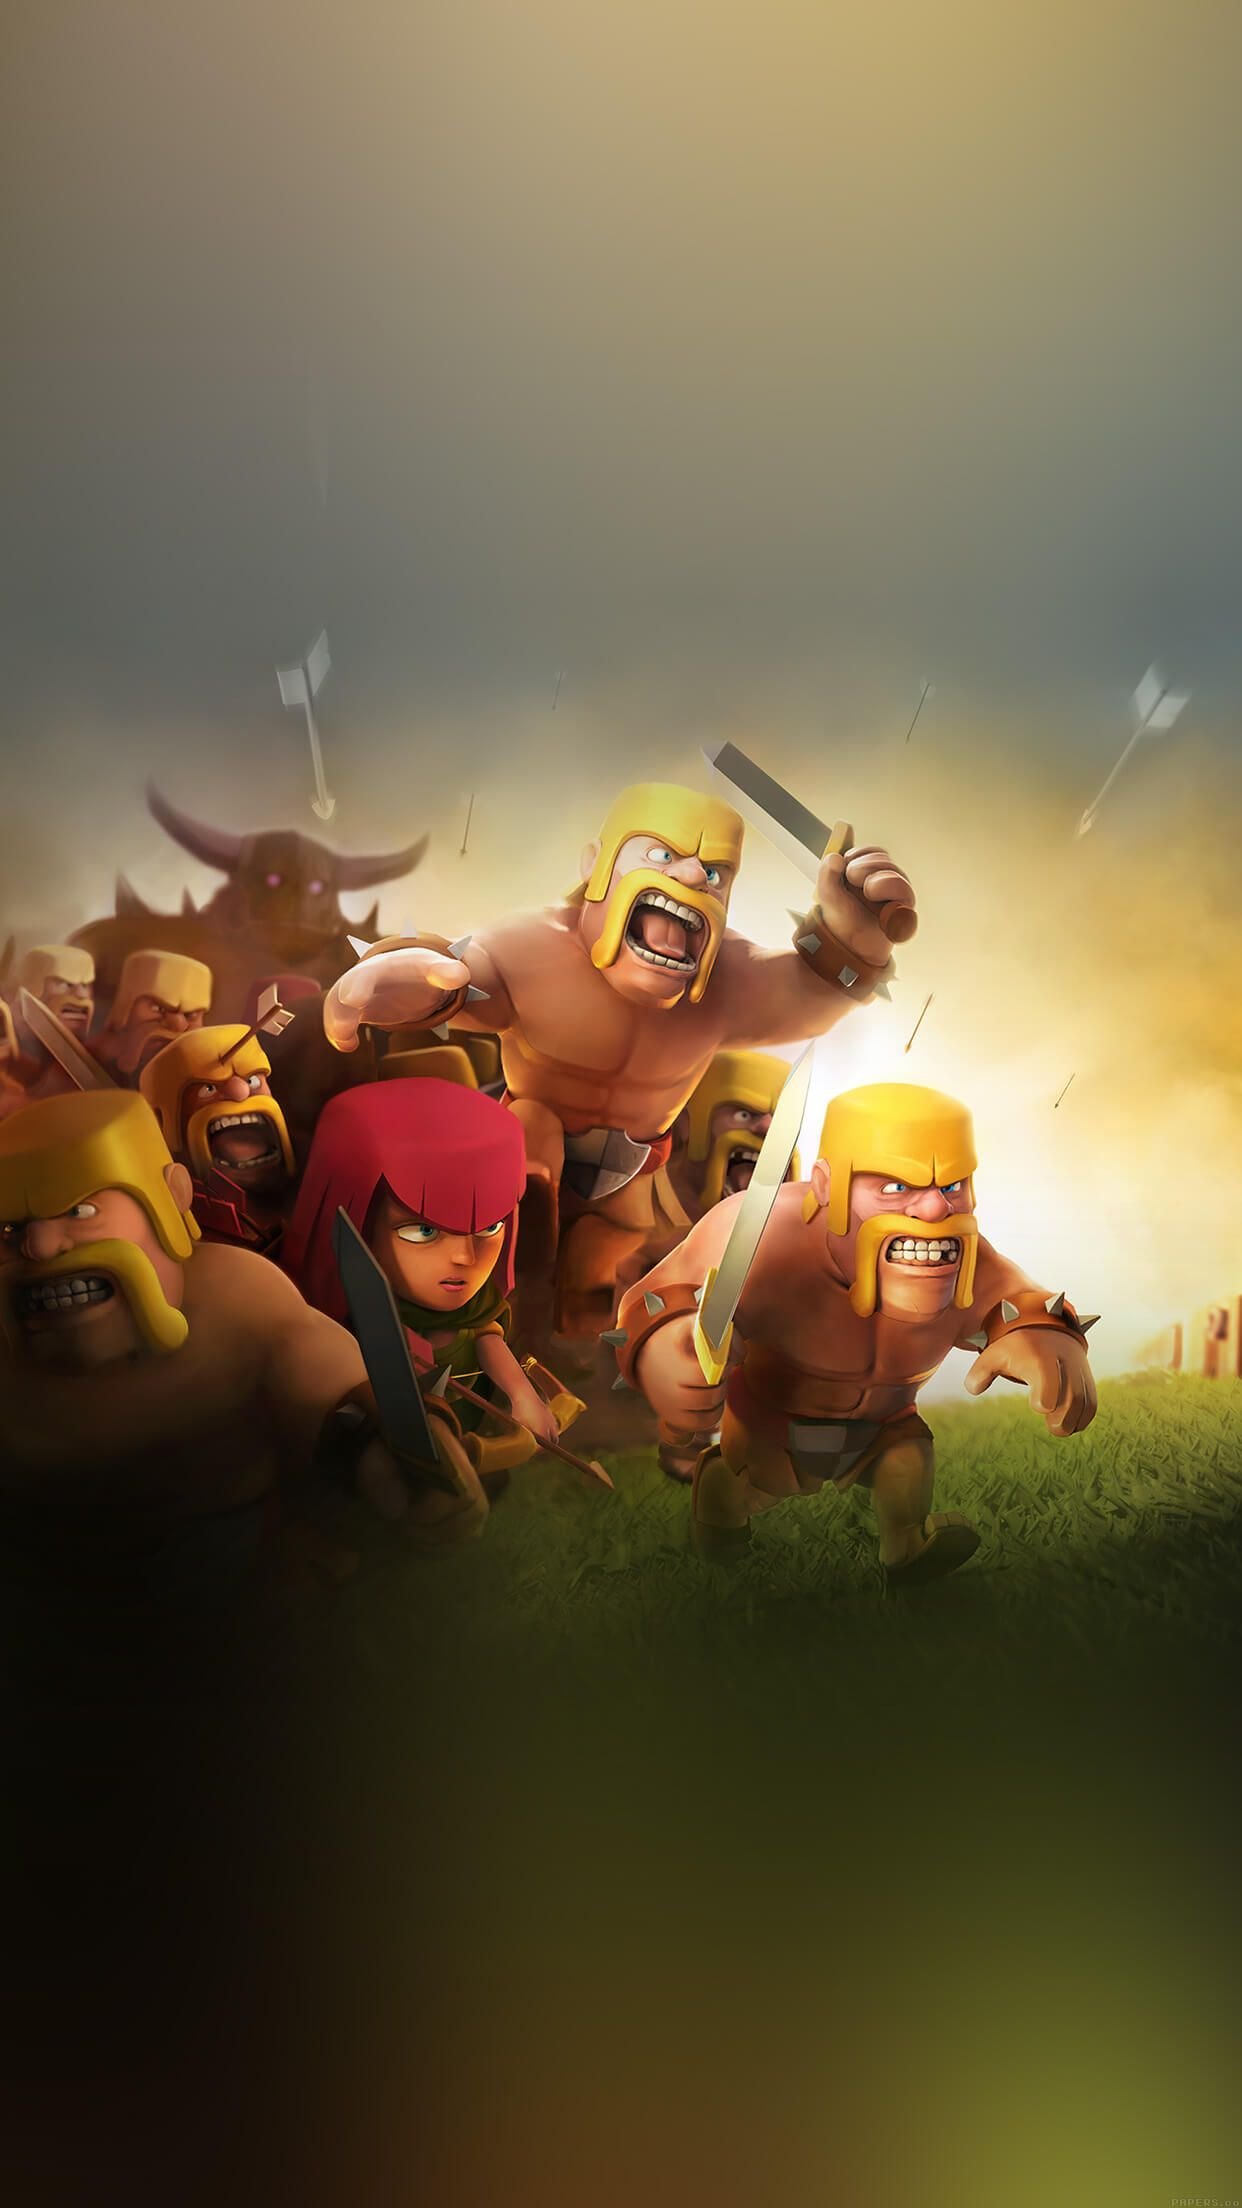 clash of clans iphone 7 plus wallpaper